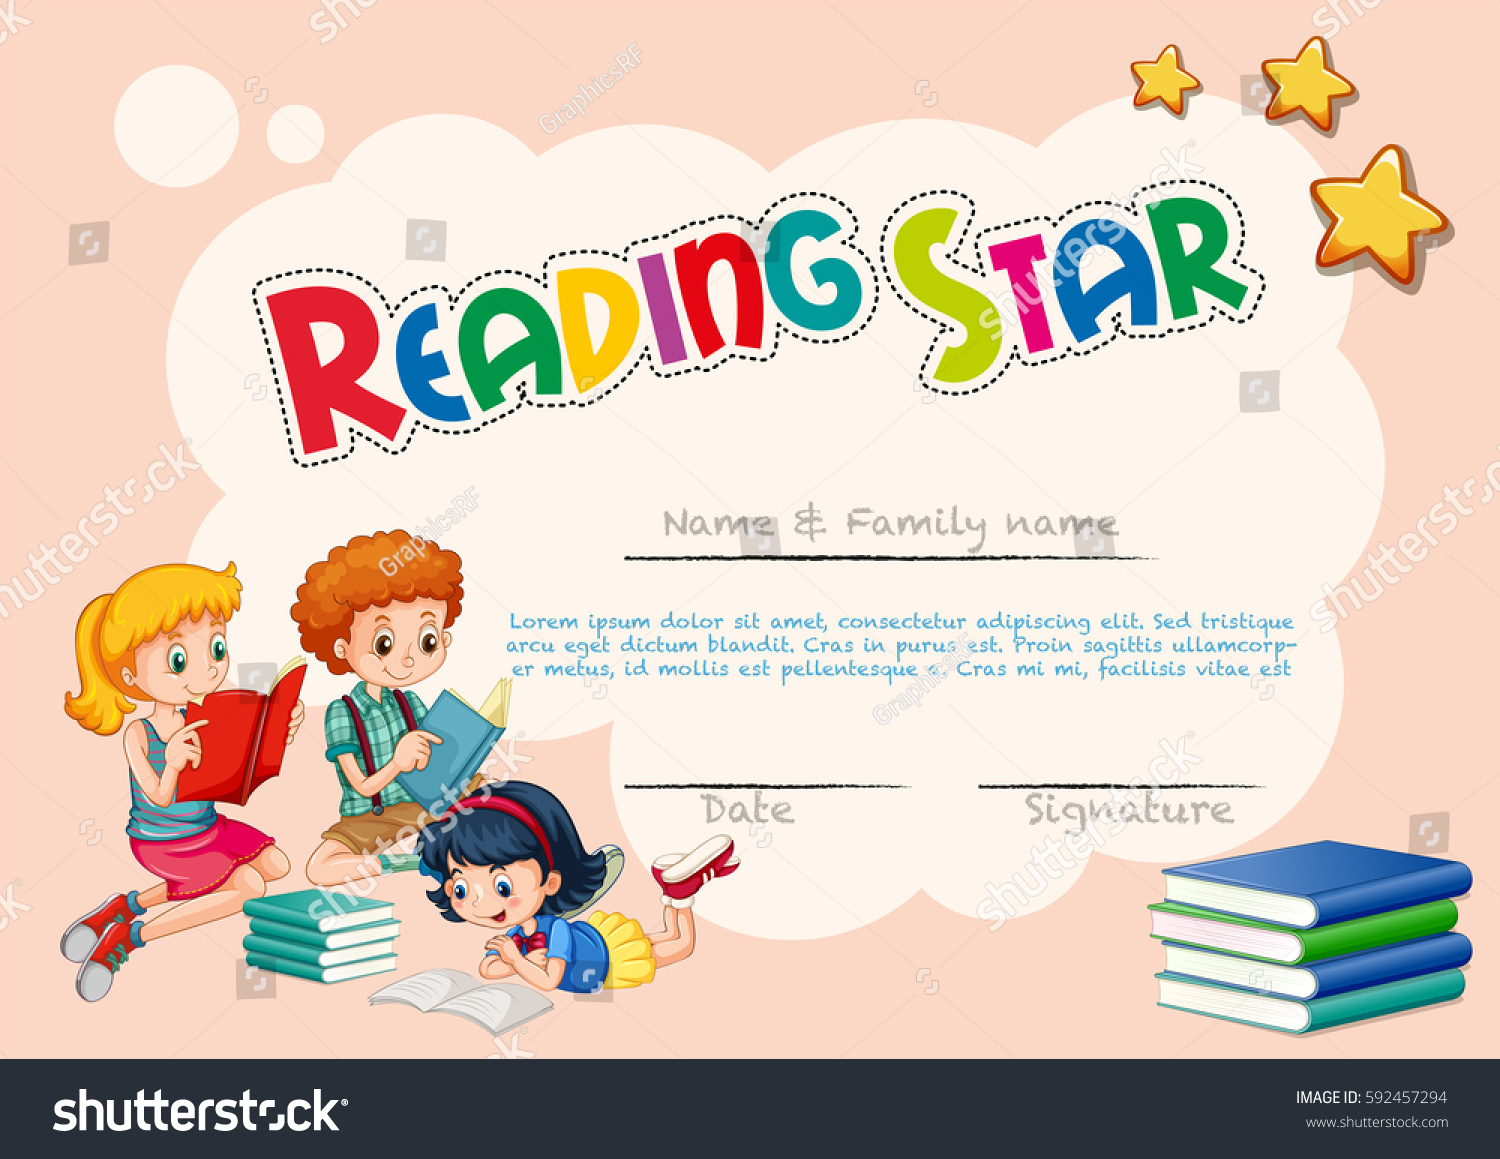 Royalty free certificate template for reading star 592457294 certificate template for reading star with pink background illustration 592457294 alramifo Images